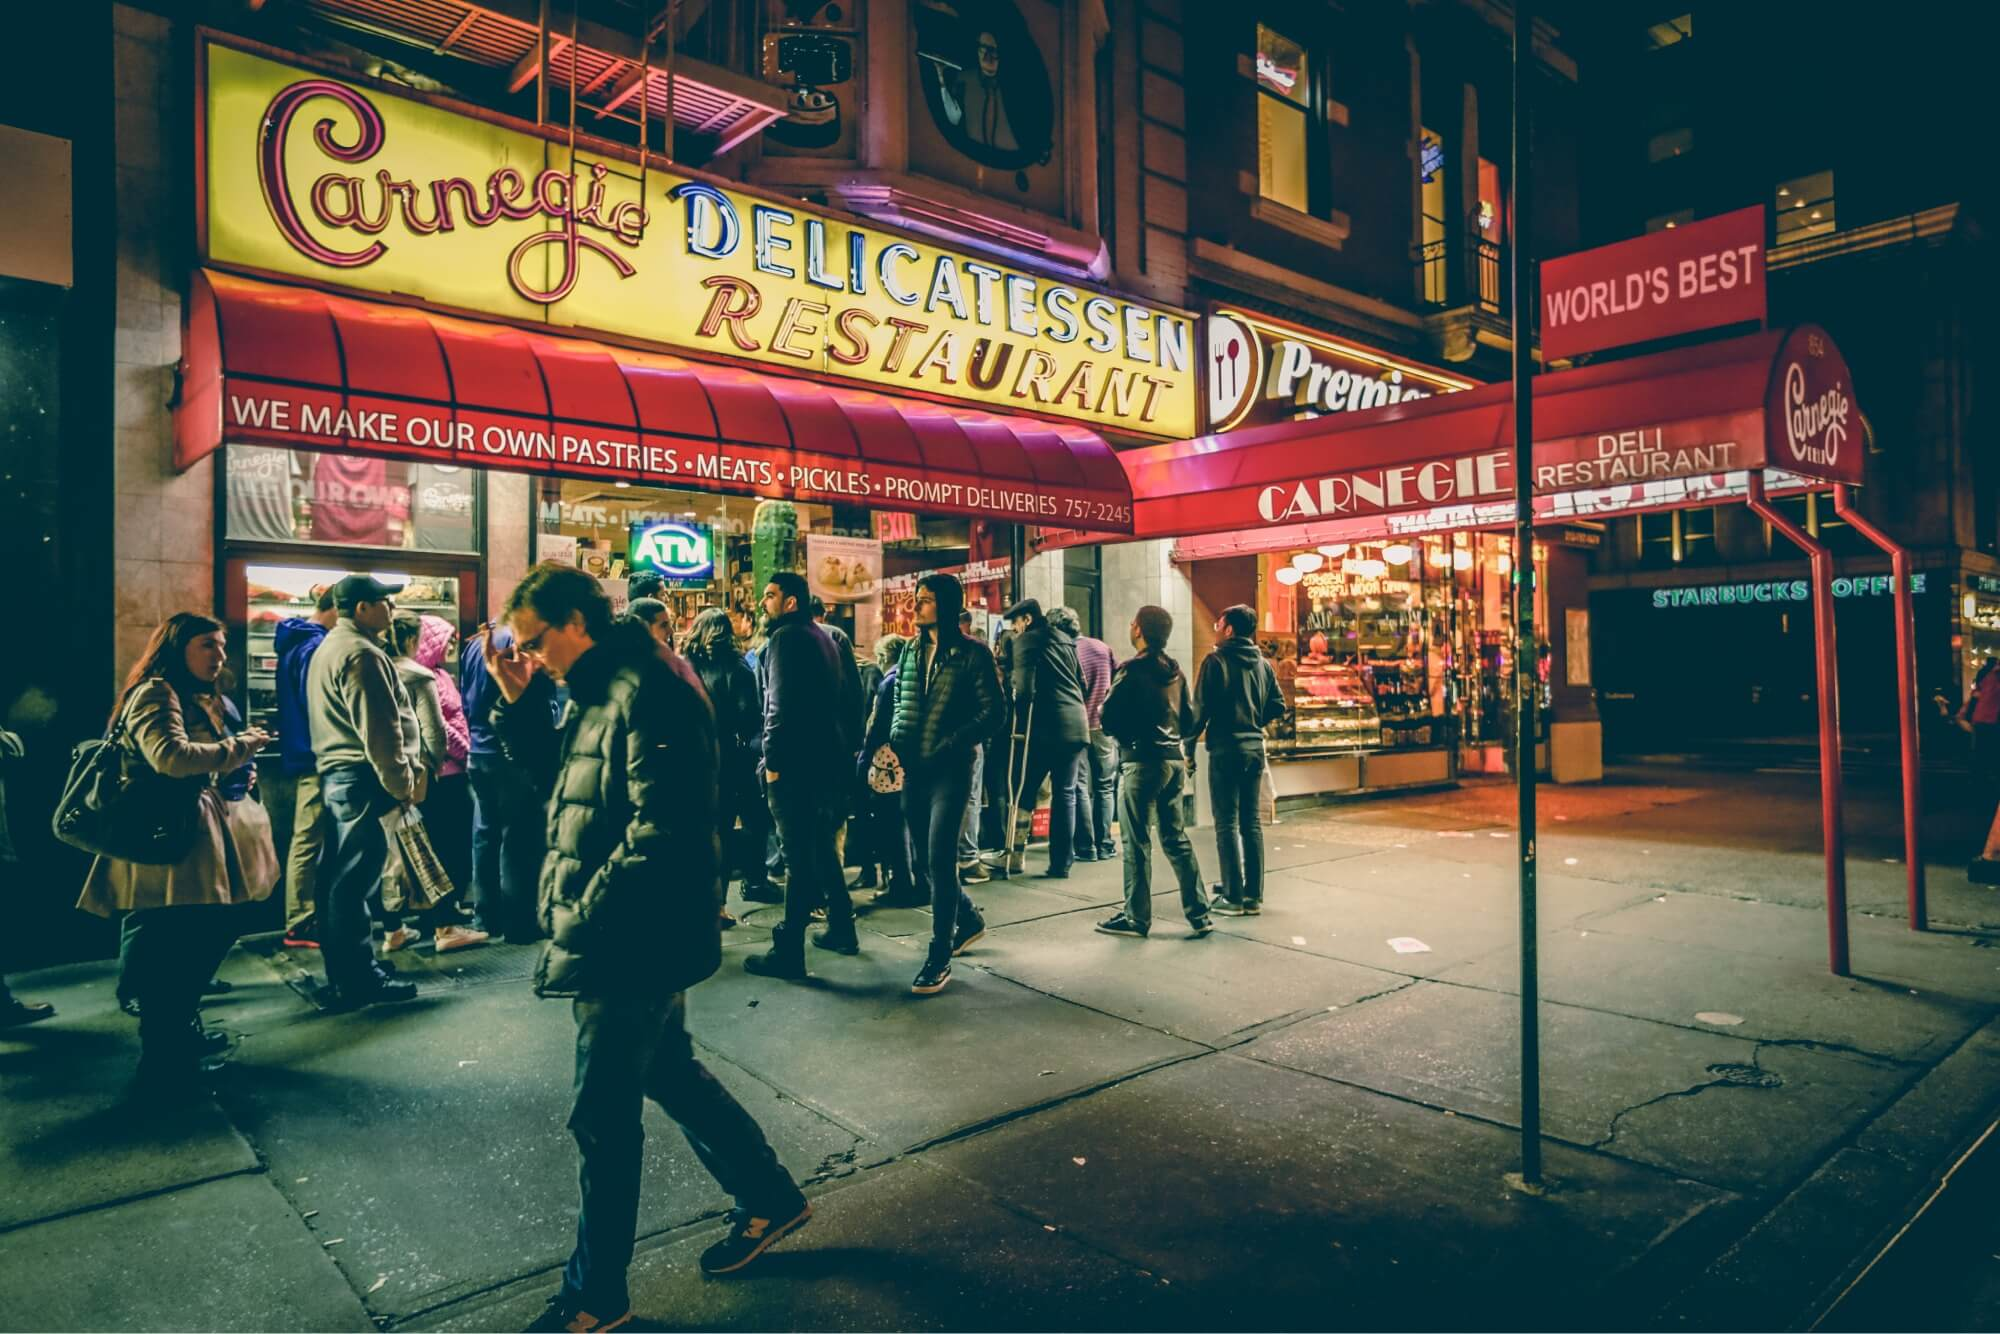 Restaurants like the delicatessan photographed with a long line out the front door are constantly looking for ways to maximize table turn time so that they can serve more guests each day.